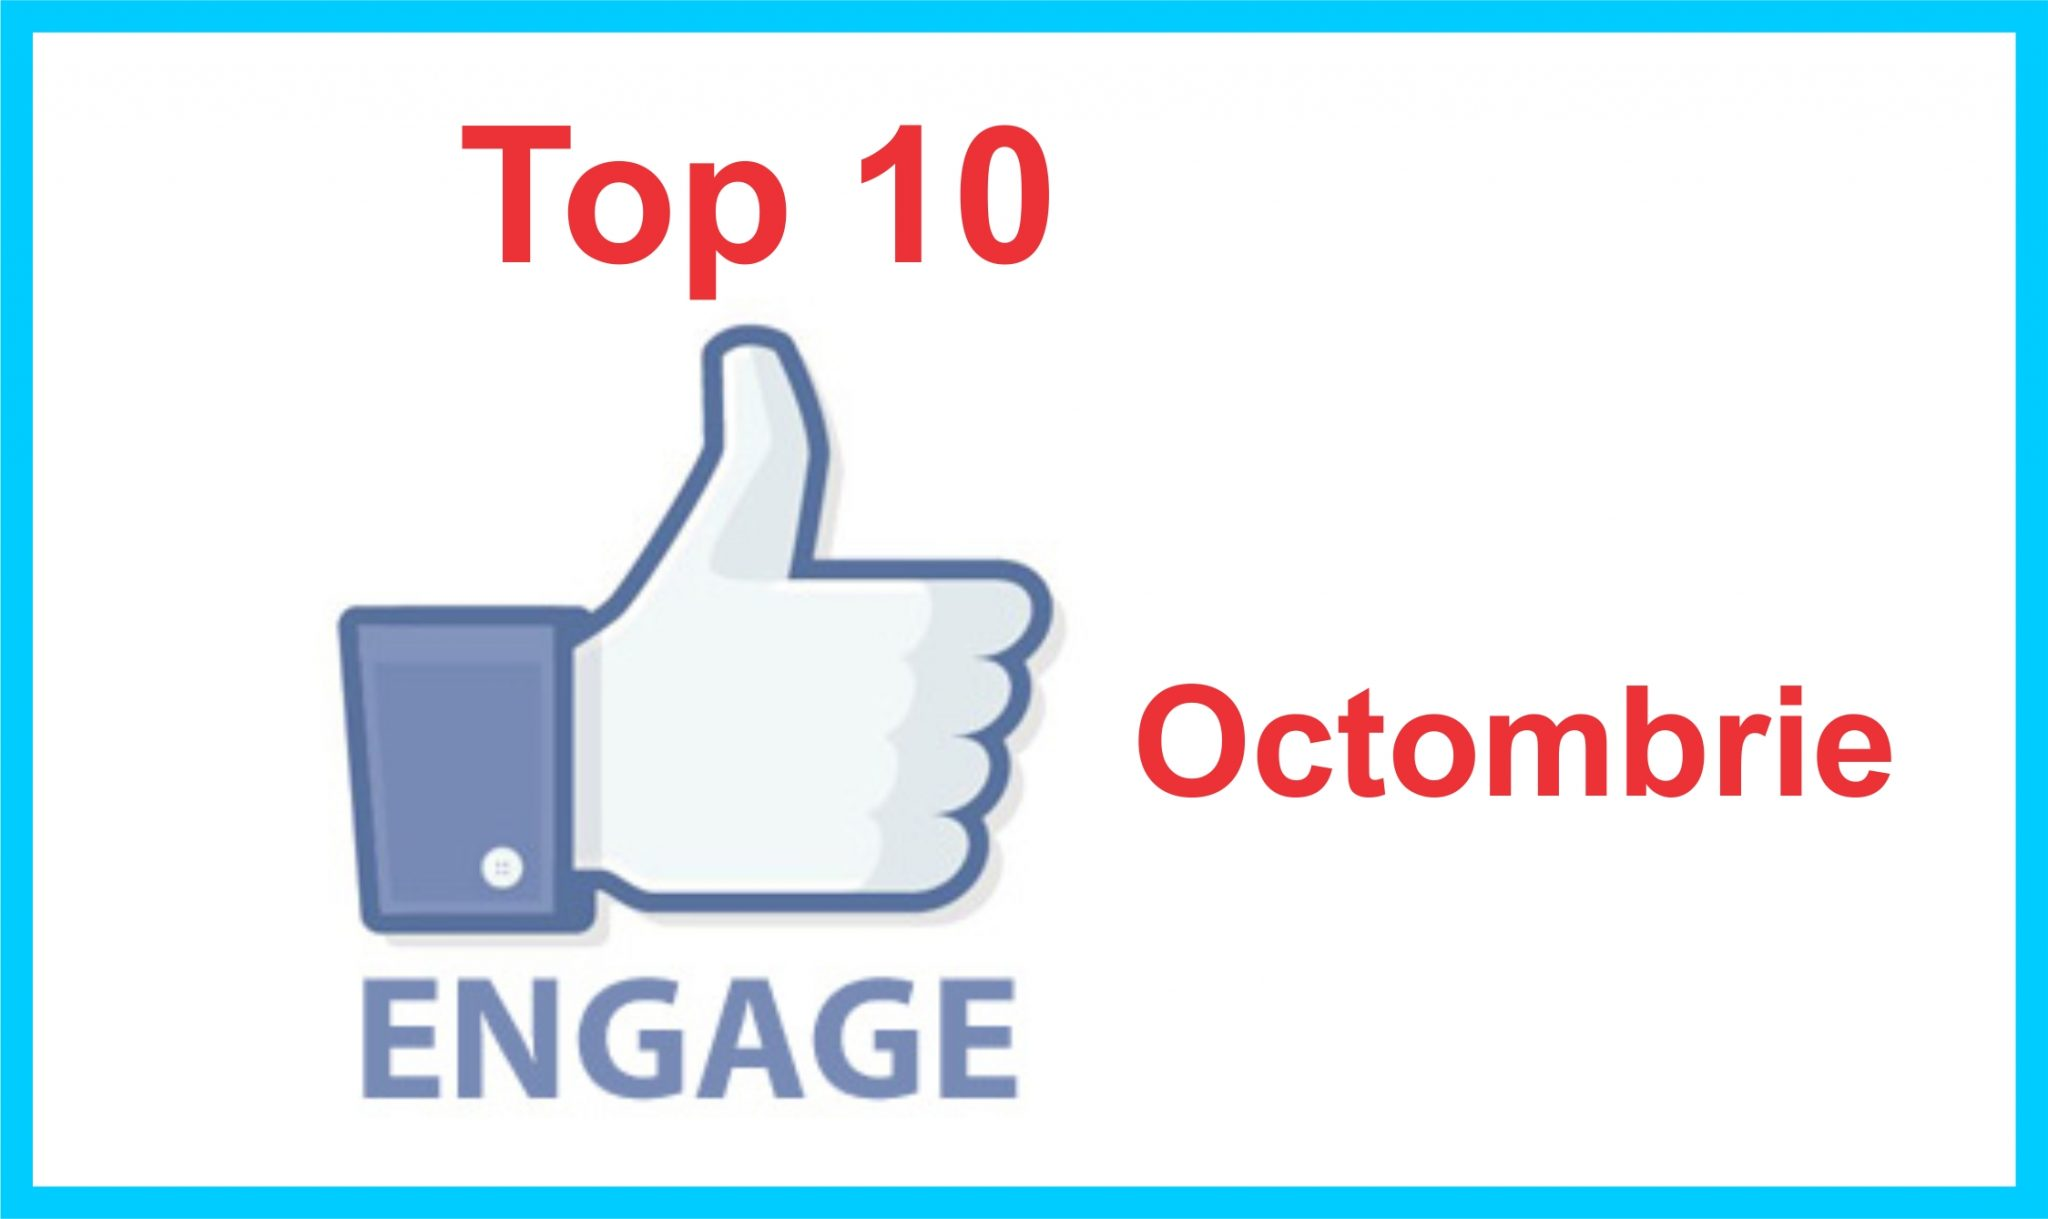 top-10-octombrie-fb